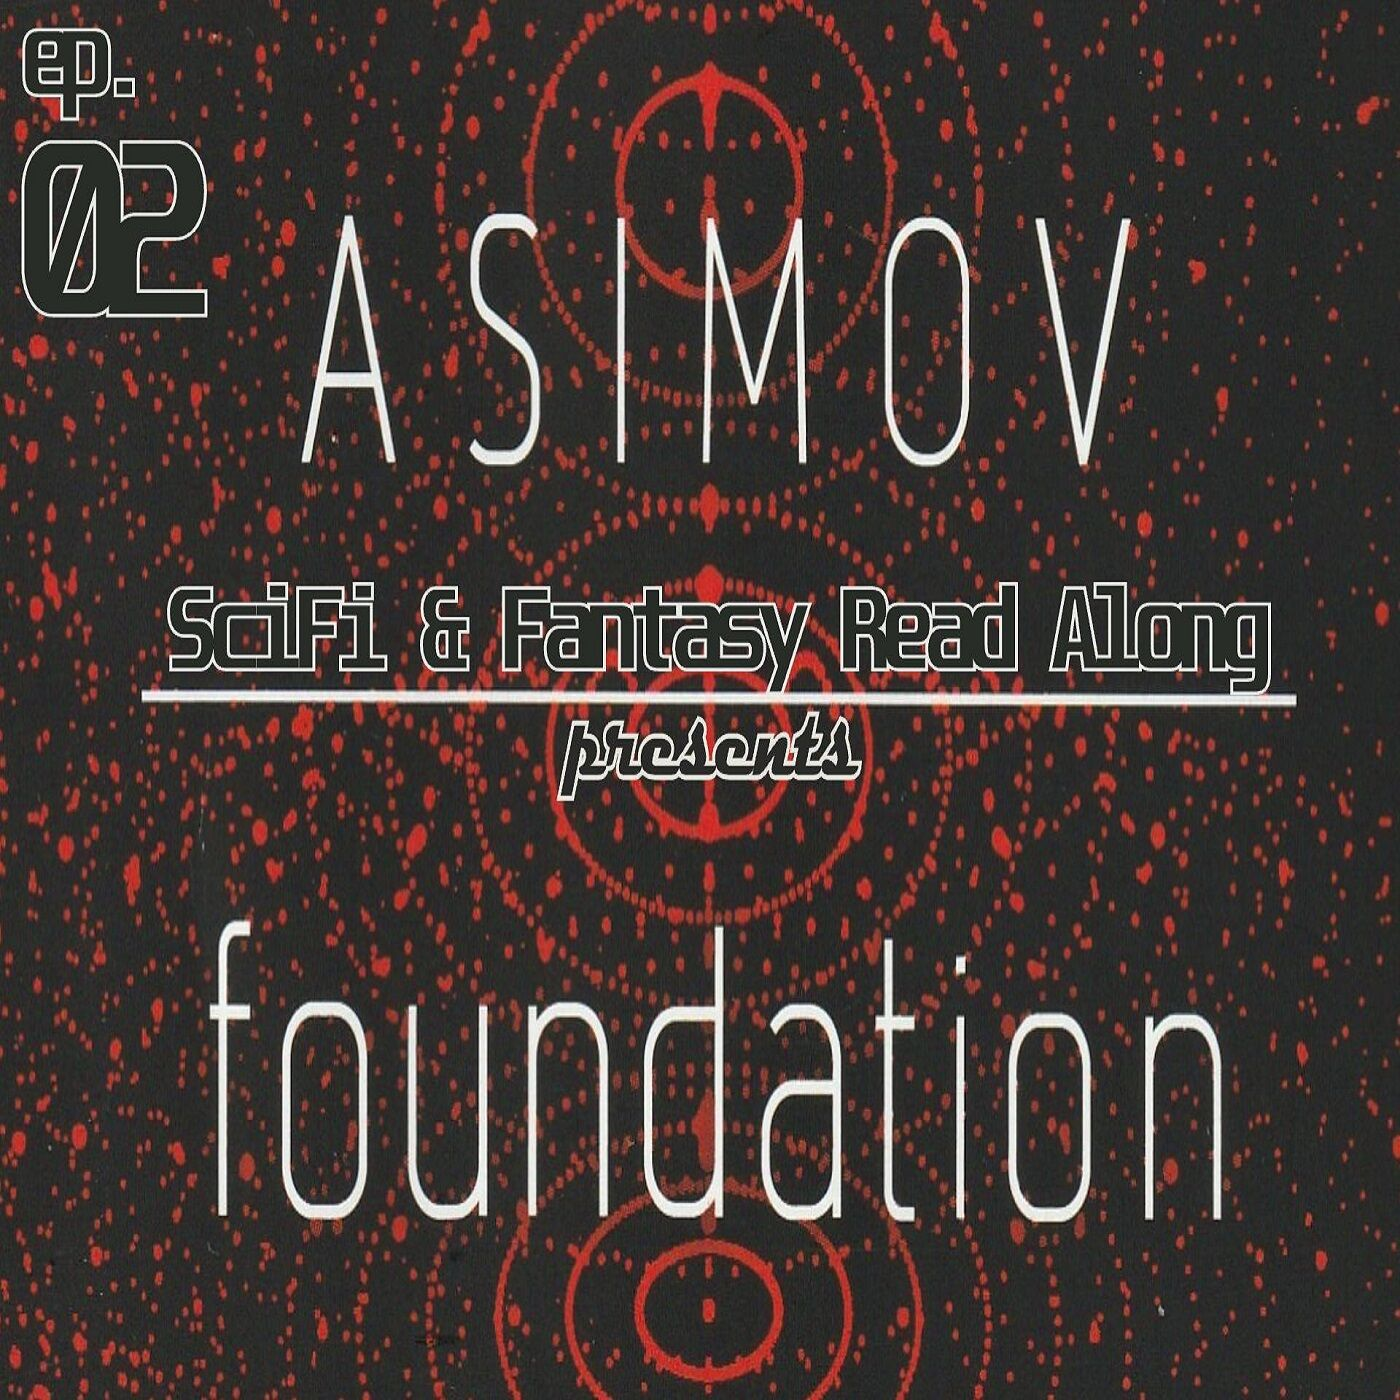 discussing Foundation by Isaac Asimov -- part 2